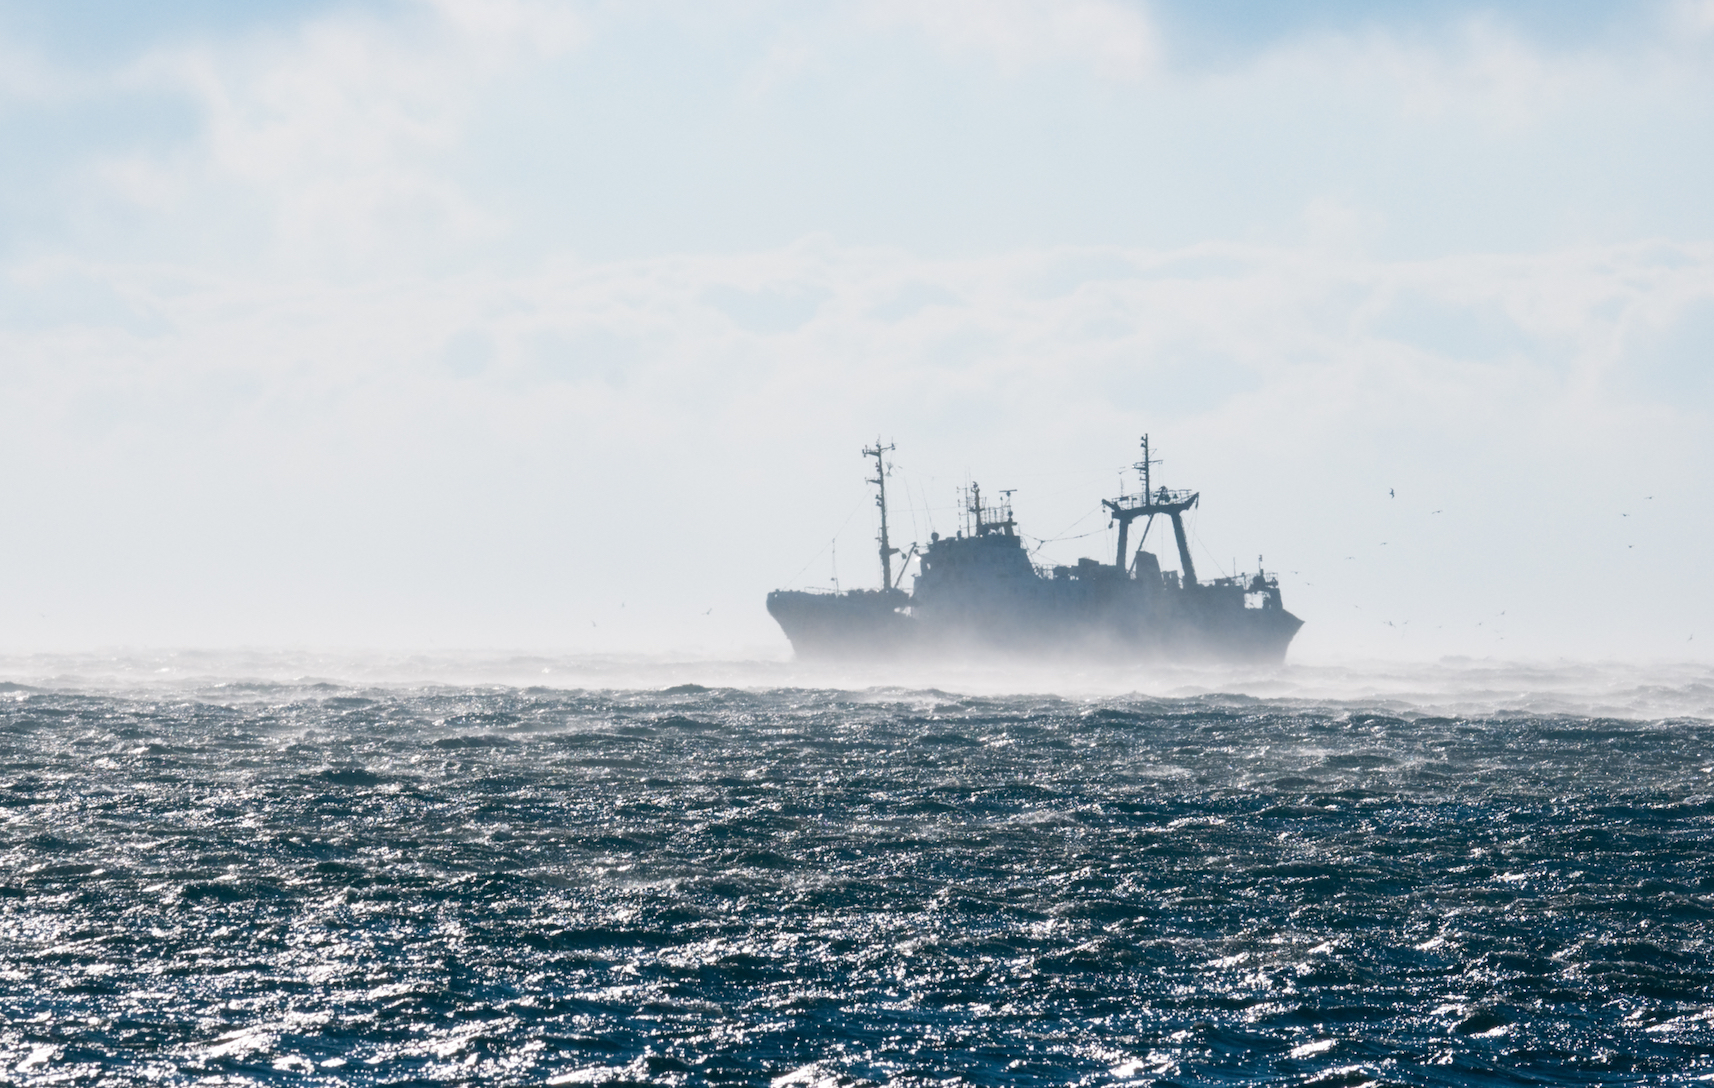 Fishing on the high seas, which covers 64 percent of the ocean's surface, is unprofitable if not for government subsidies, according to a new extensive report covering the economics of fishing.